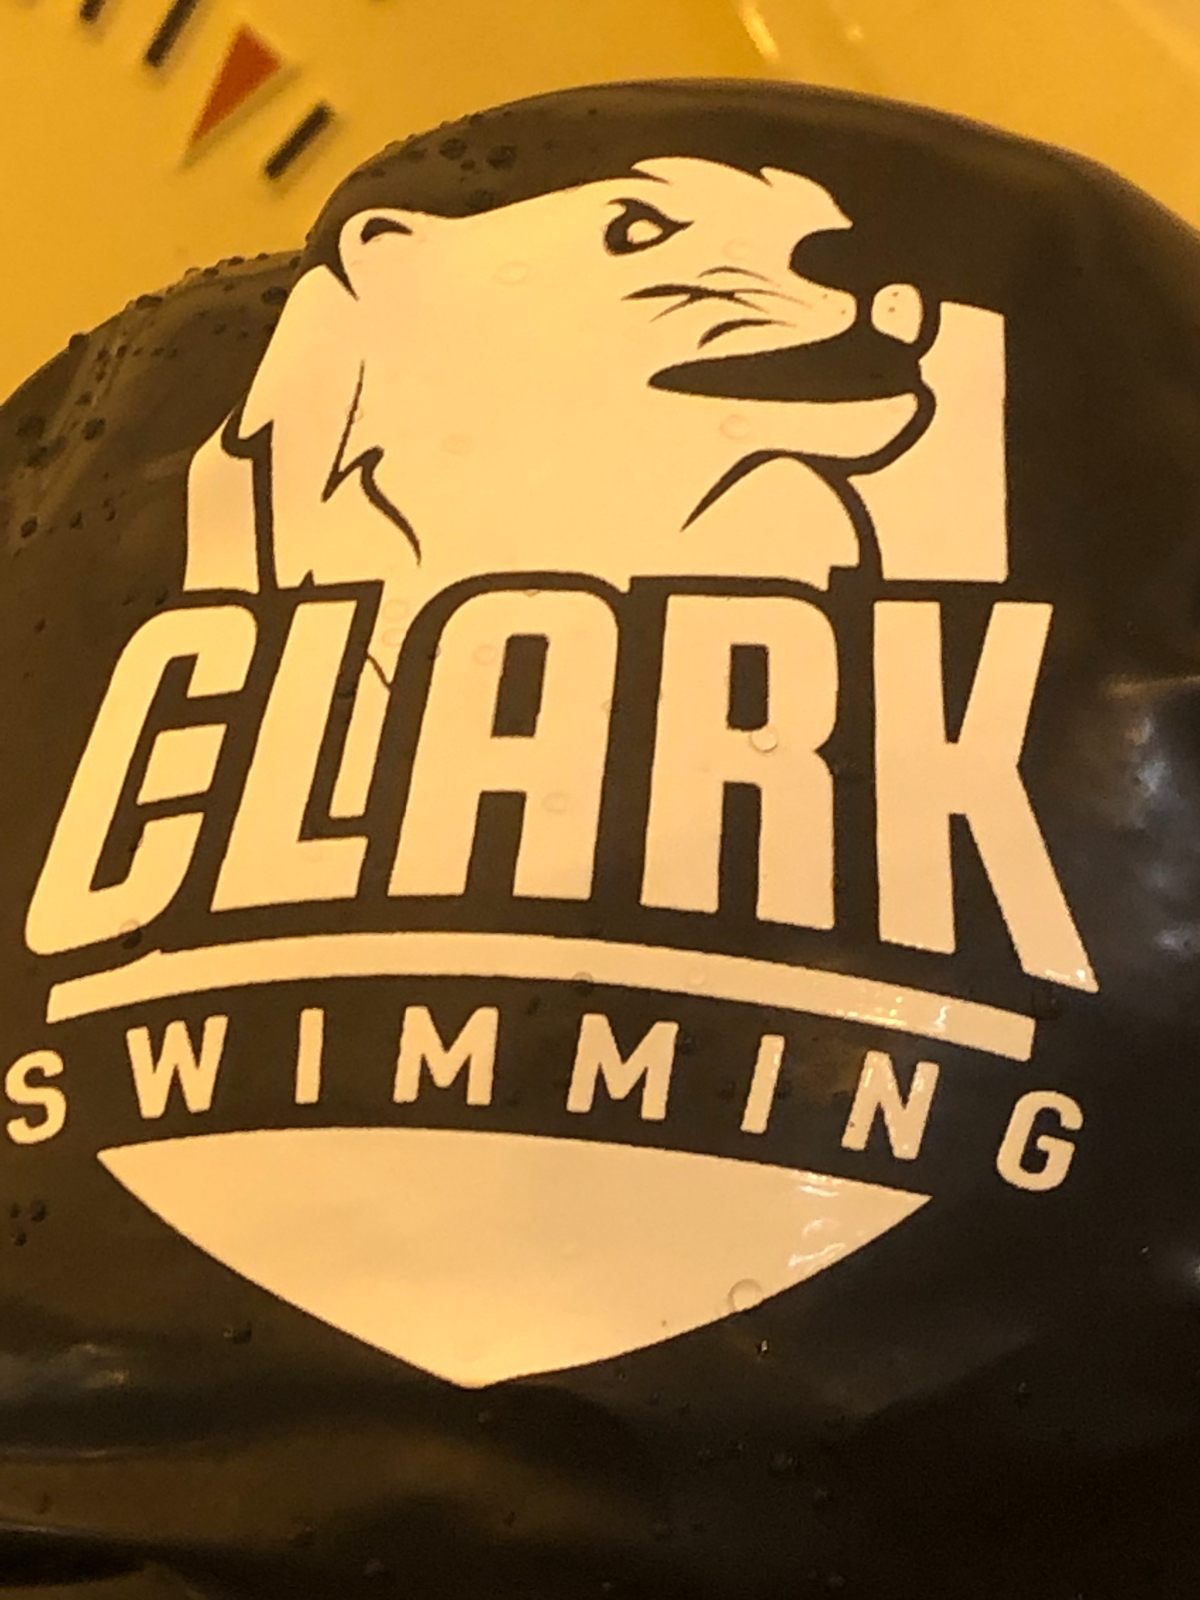 Boys Swim Sectional Prelims Tonight at Munster HS – Links to Watch #PioneerOn #WeWillLead #LastDanceGRC